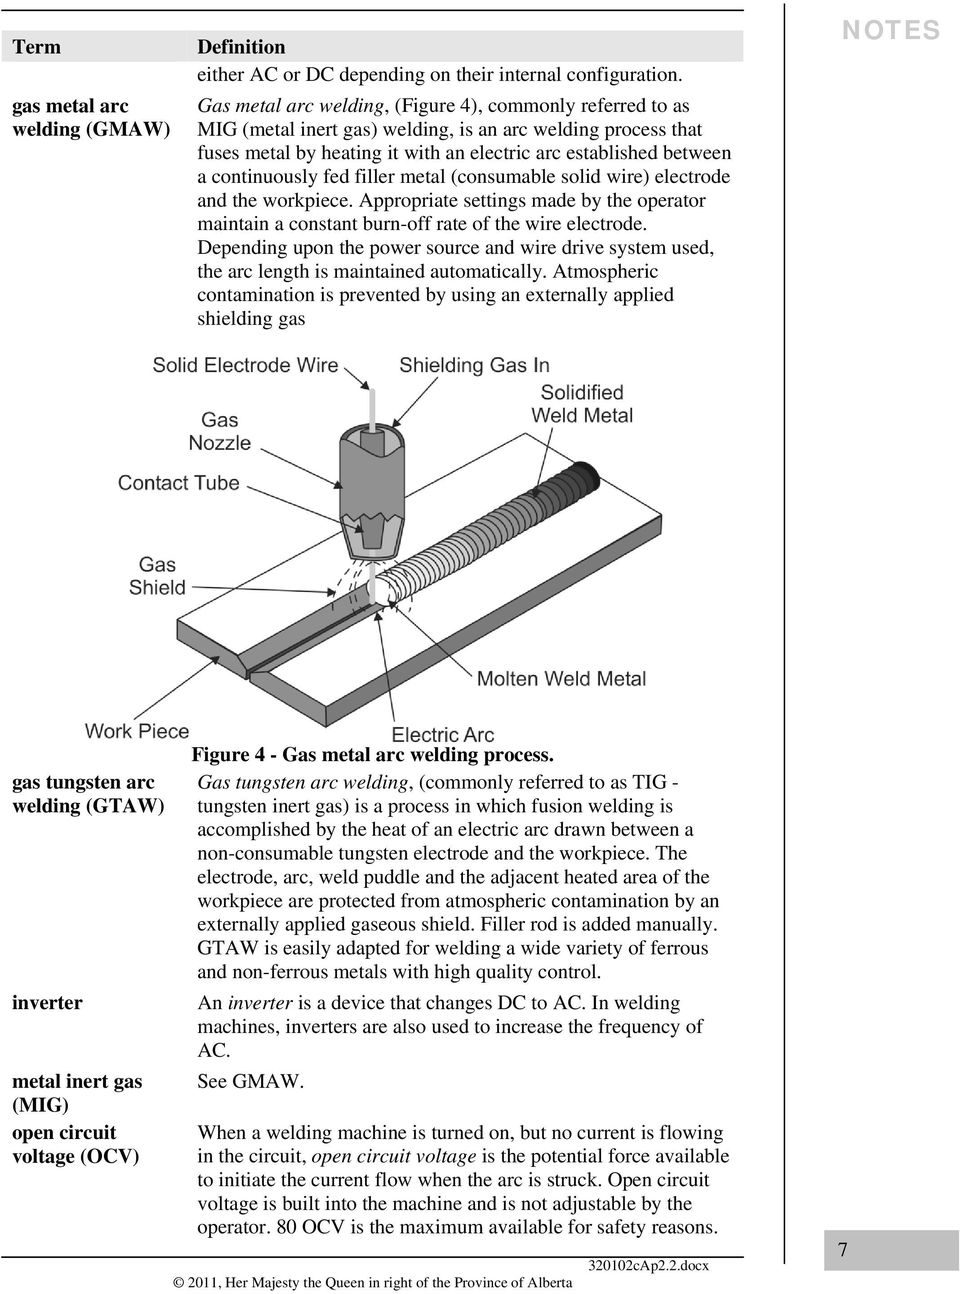 Shielded Metal Arc Welding Smaw Part A Pdf Diagram Continuously Fed Filler Consumable Solid Wire Electrode And The Workpiece Appropriate Settings